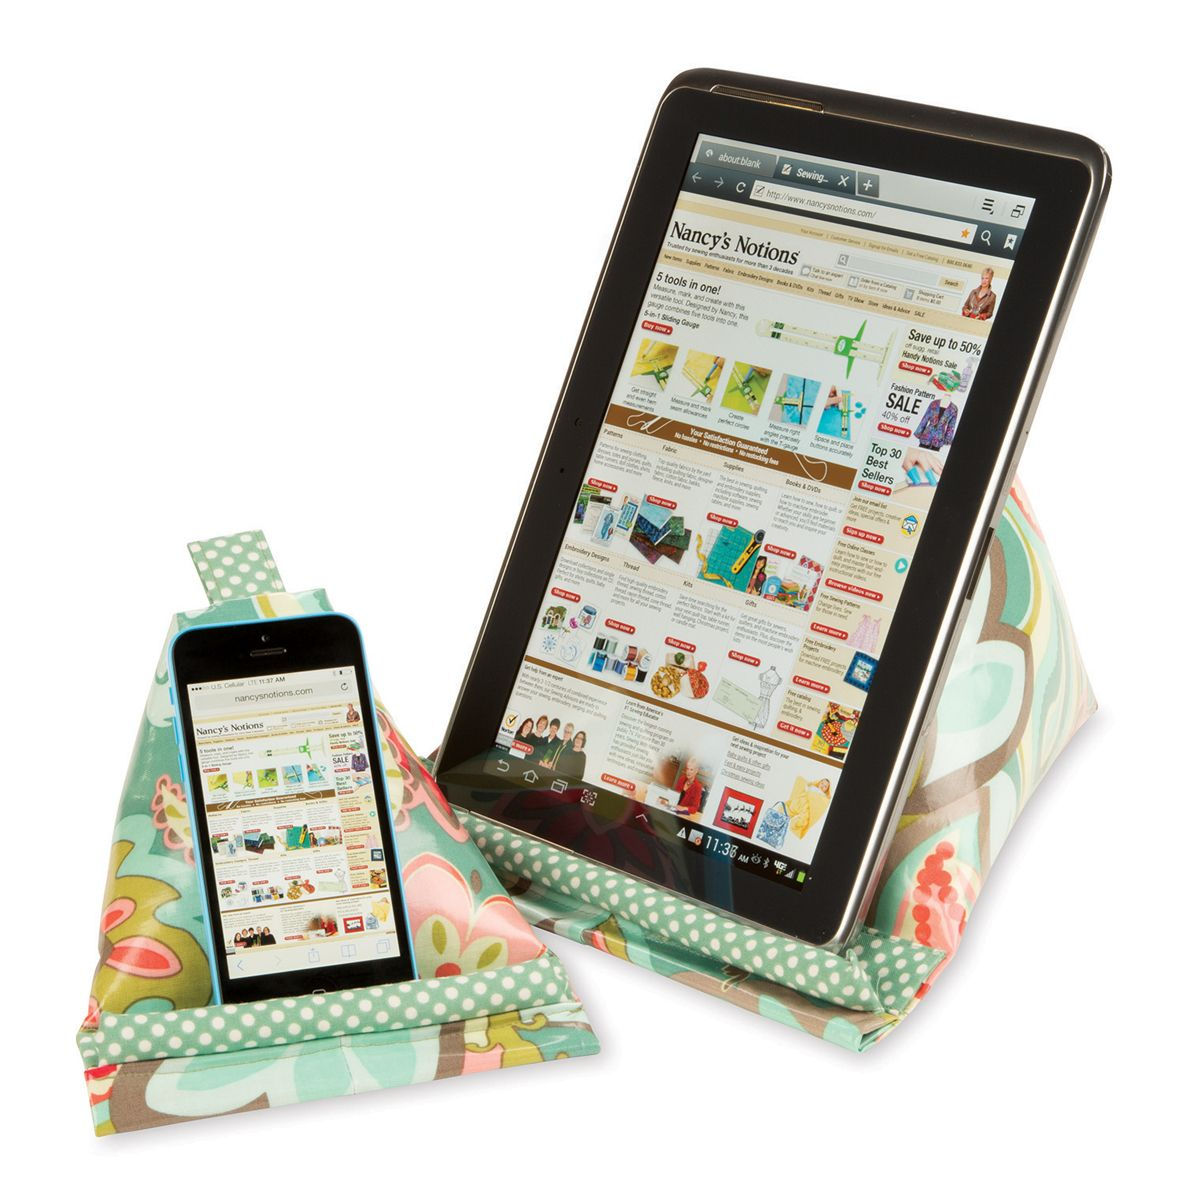 sew an easy ipad pillow or tablet stand